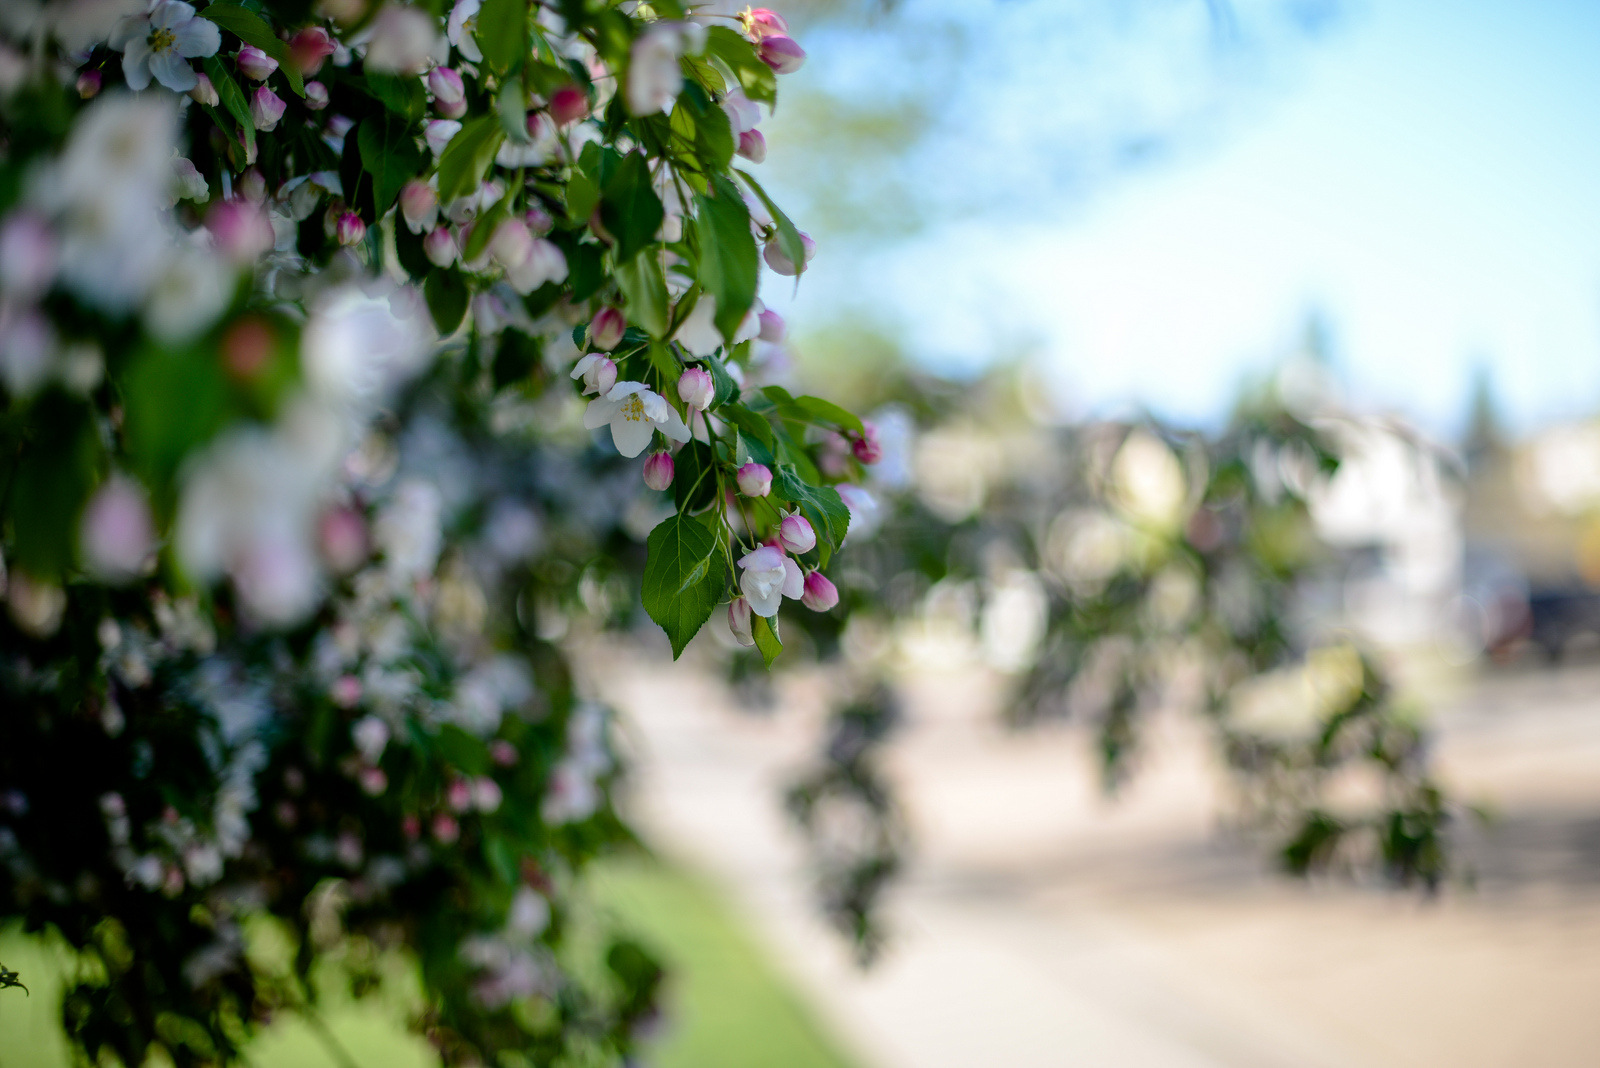 blossoms in the suburbs